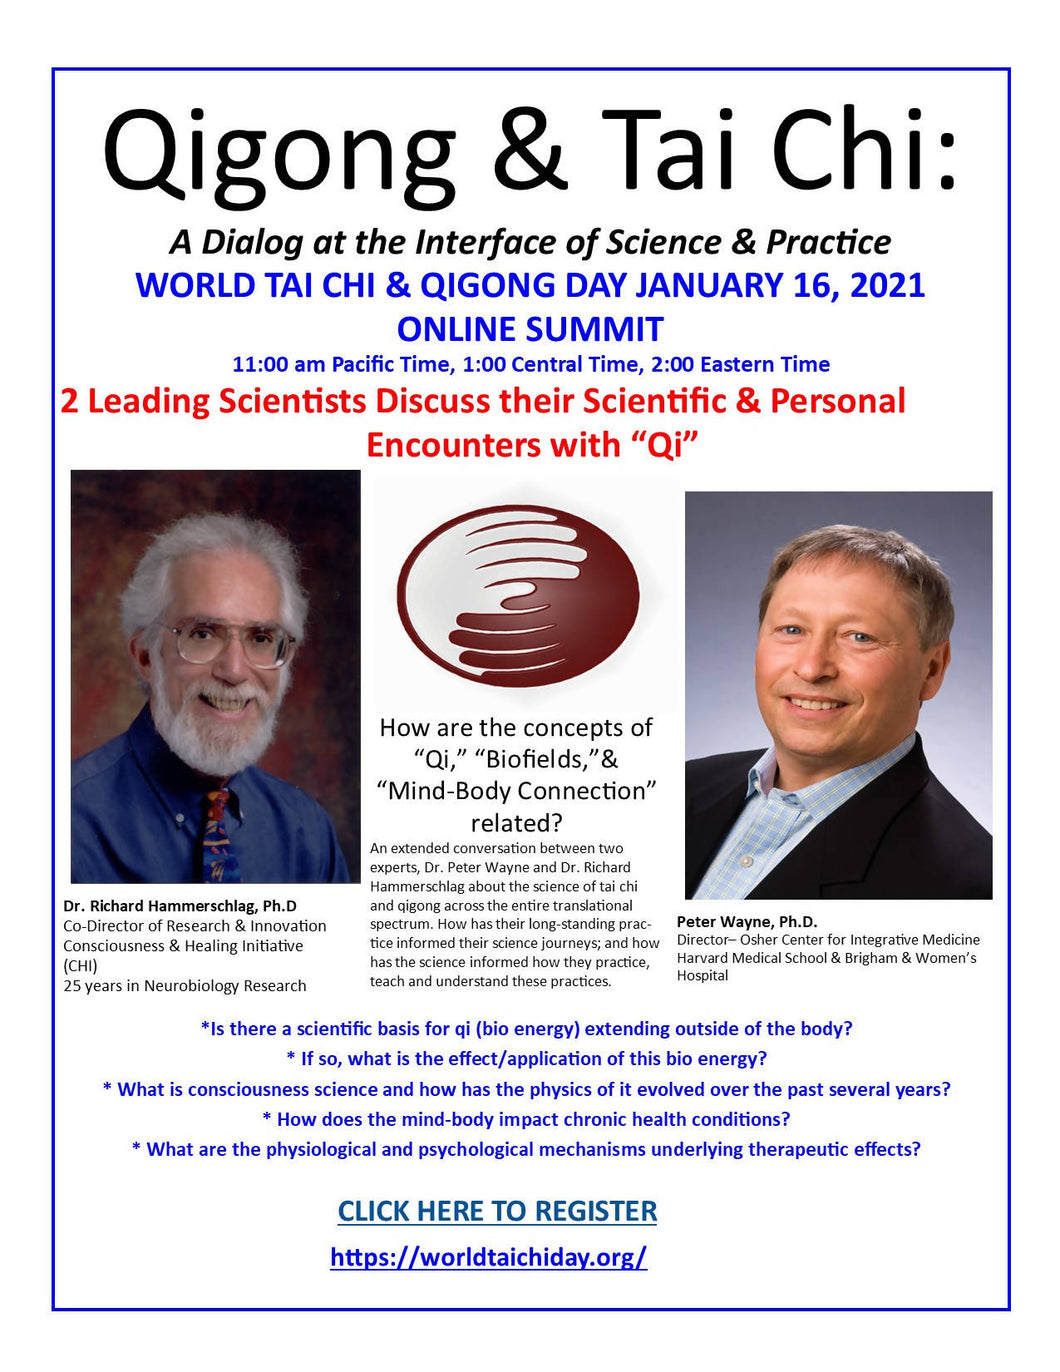 WTCQD January 2021 Online Summit